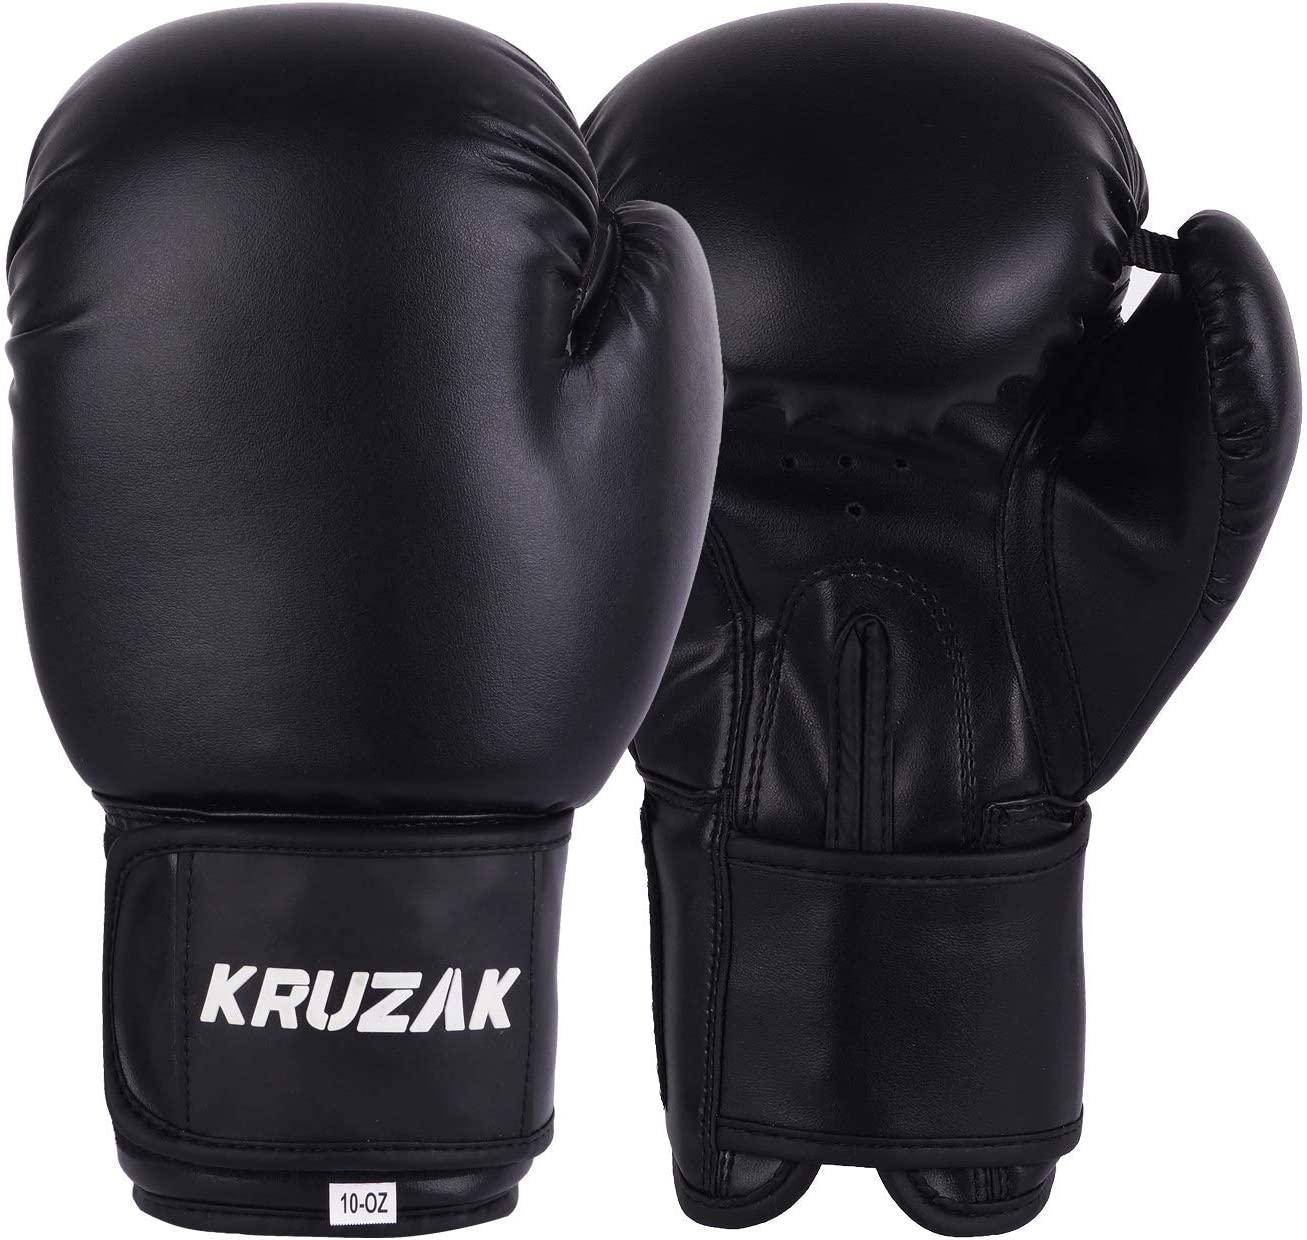 Martial Arts /& MMA Fighting Kickboxing Muay Thai Kruzak Plain Boxing Gloves for Sparring Men /& Women Punch Bag Mitts Training and Focus Pads Punching